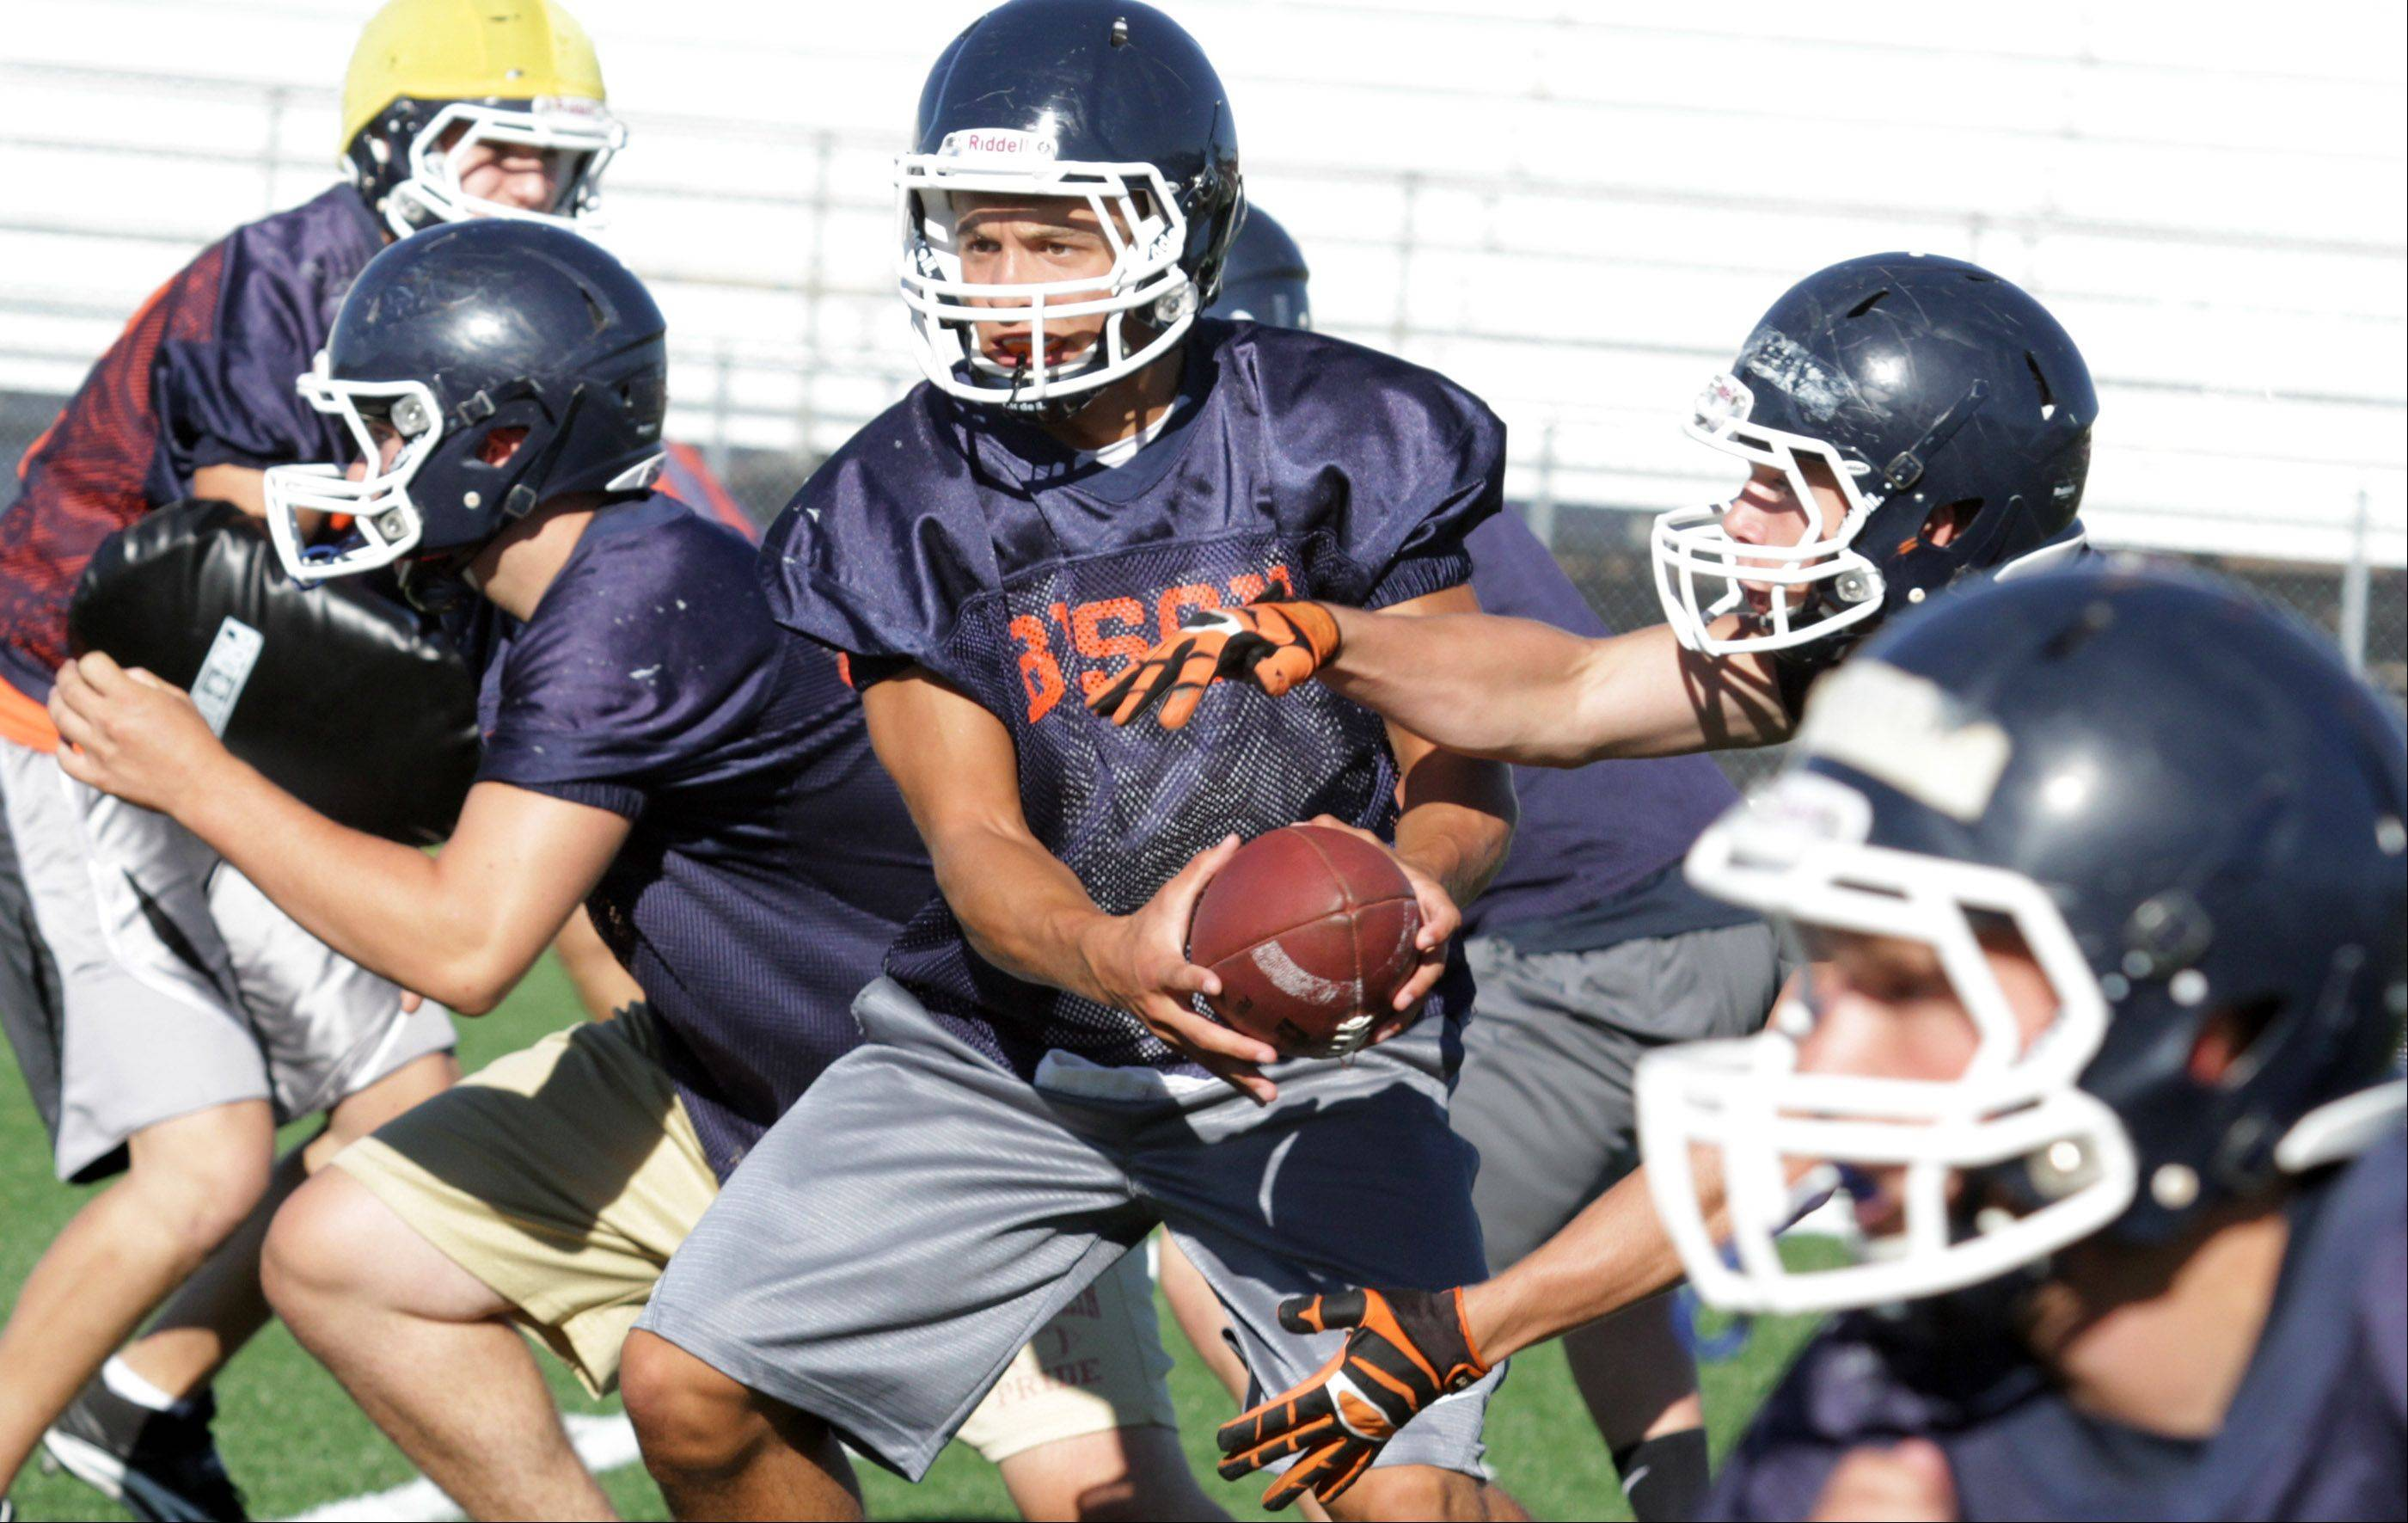 Buffalo Grove High School starting quarterback Andrew Apel hands the ball off to fullback Scott Smitheren during the first day of practice on Wednesday, August 14, 2013.